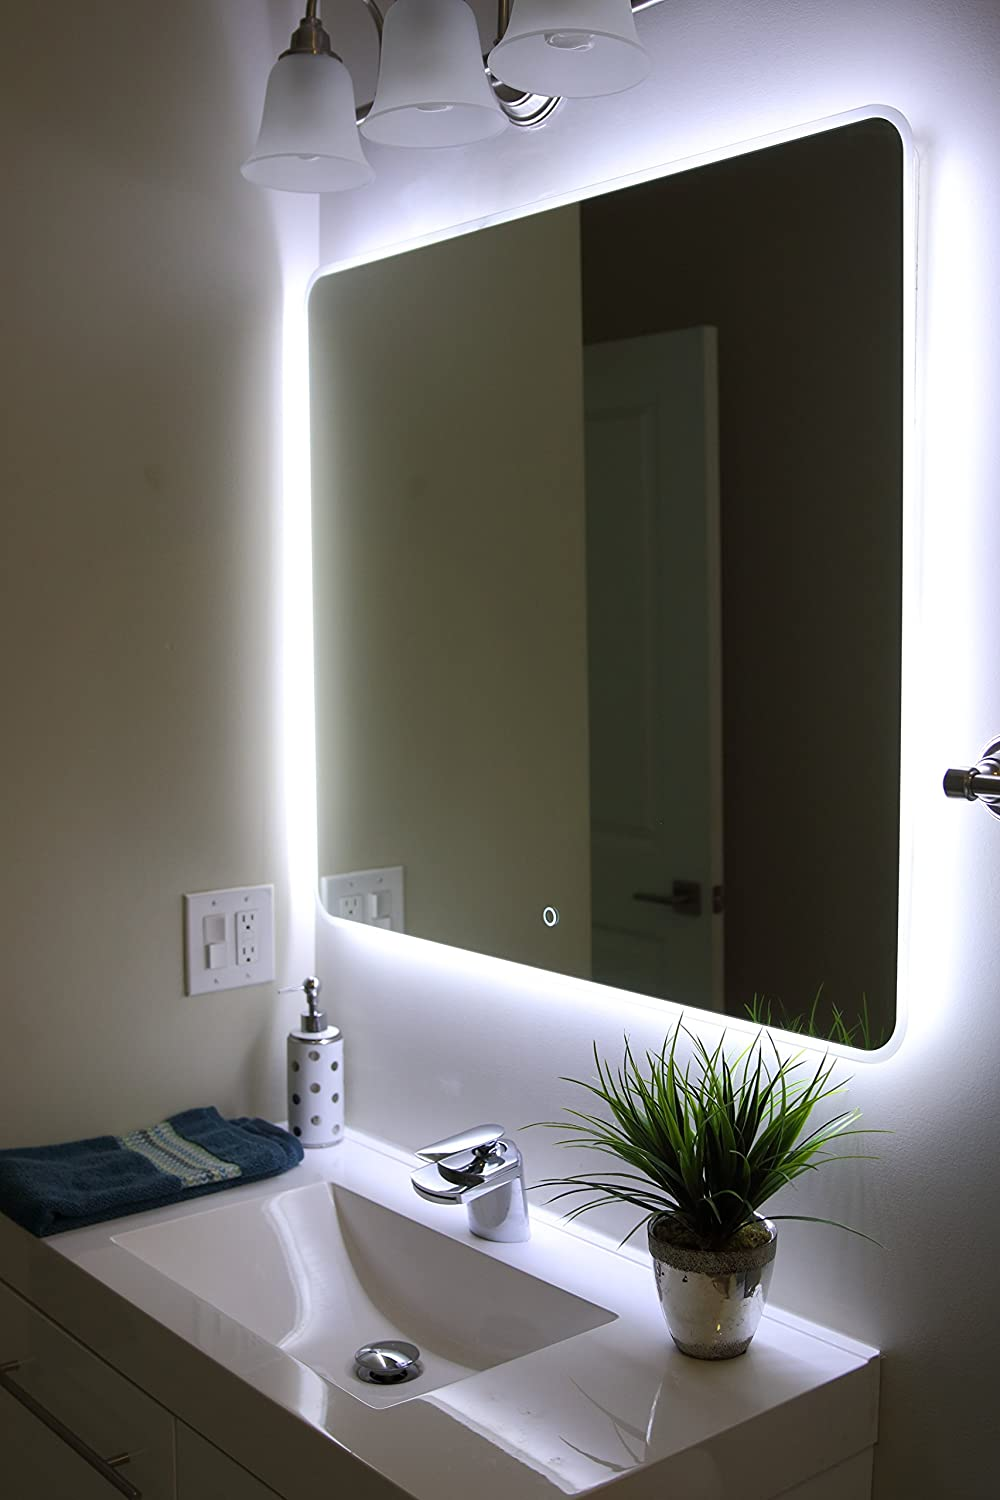 Awesome Mirror Lighting. Lighting Mirrors Bathroom. Amazon.com: Windbay Backlit Led Light  Bathroom